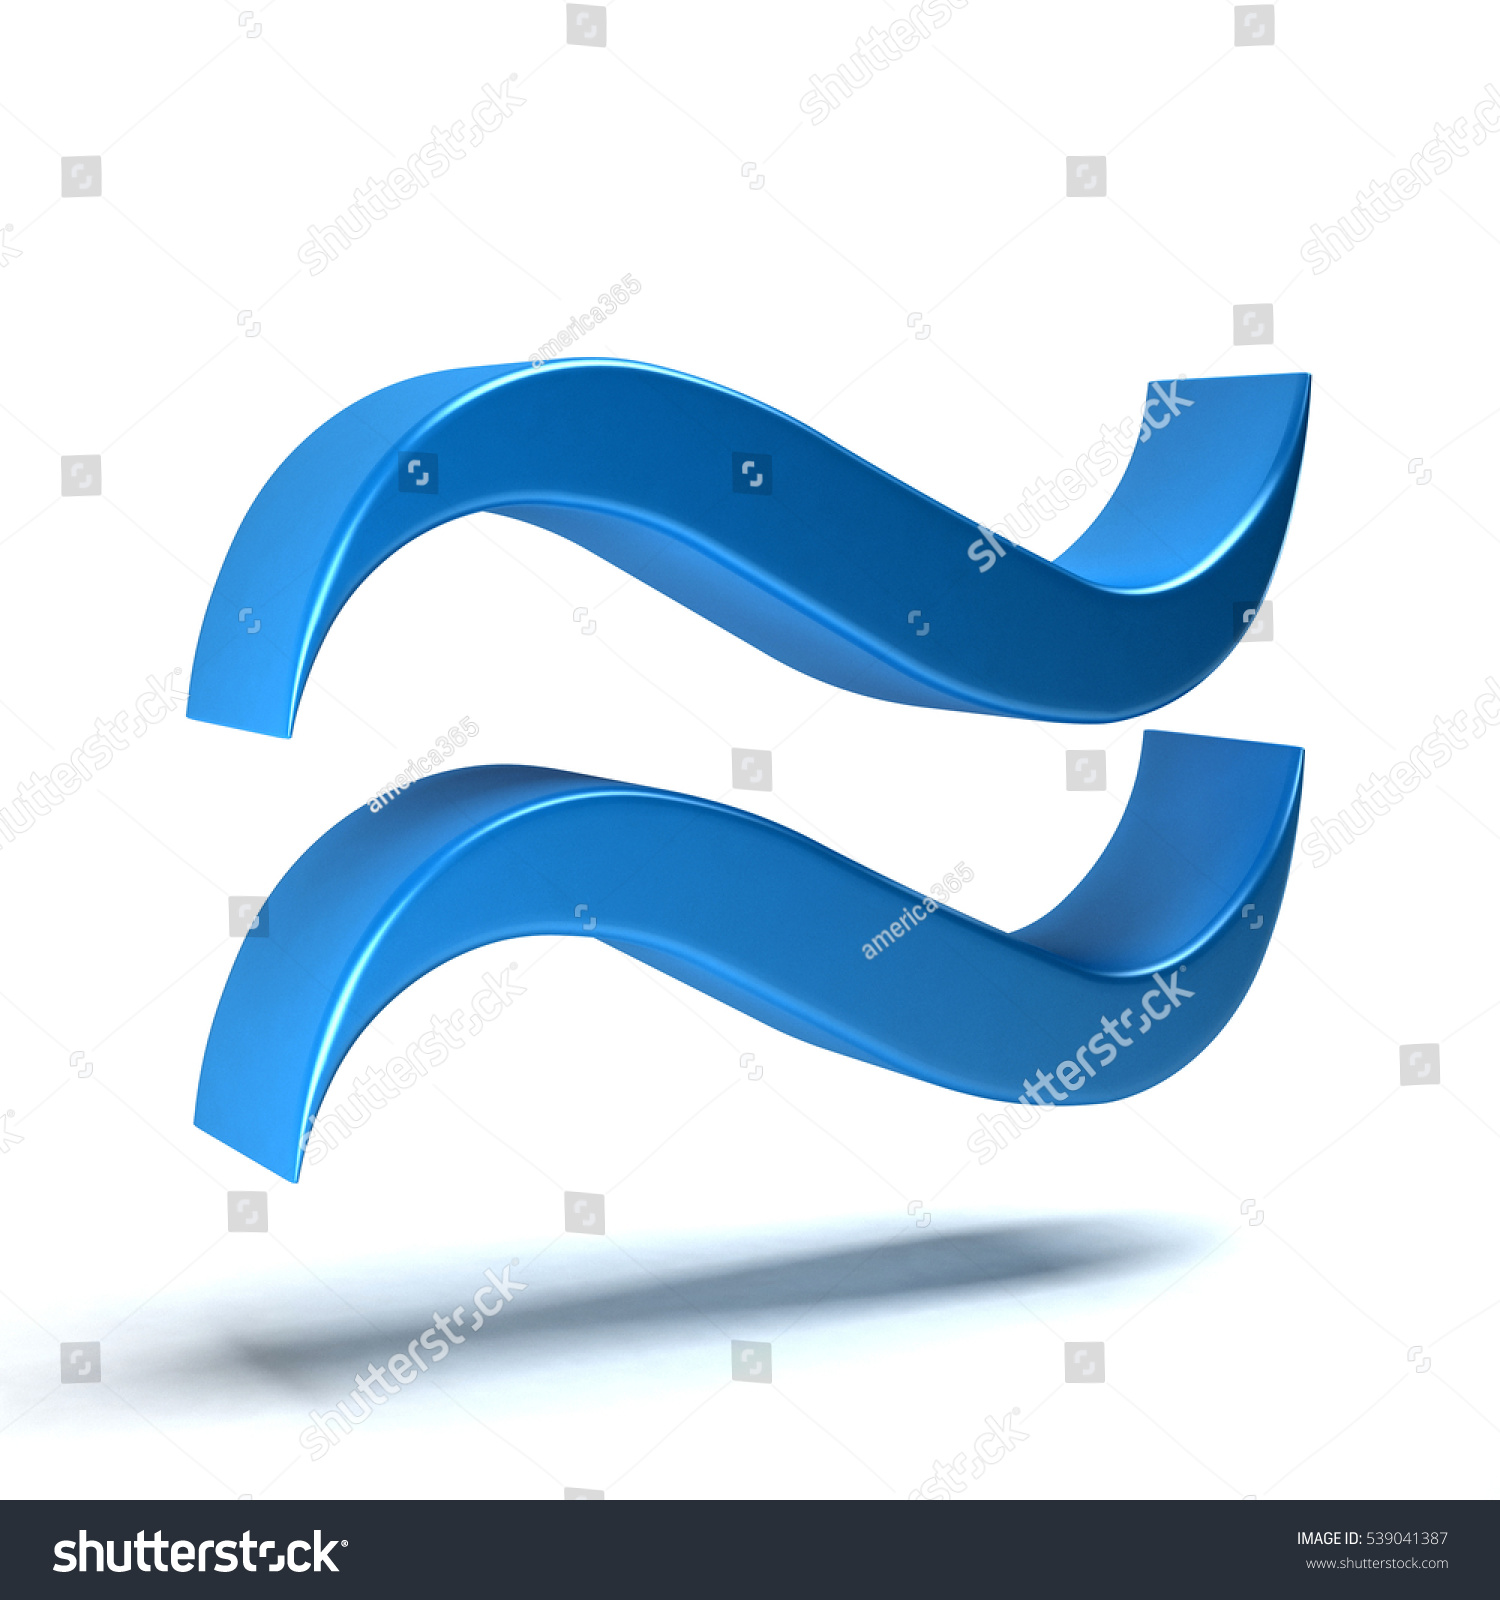 Approximately Equal Math Symbol 3 D Rendering Stock Illustration